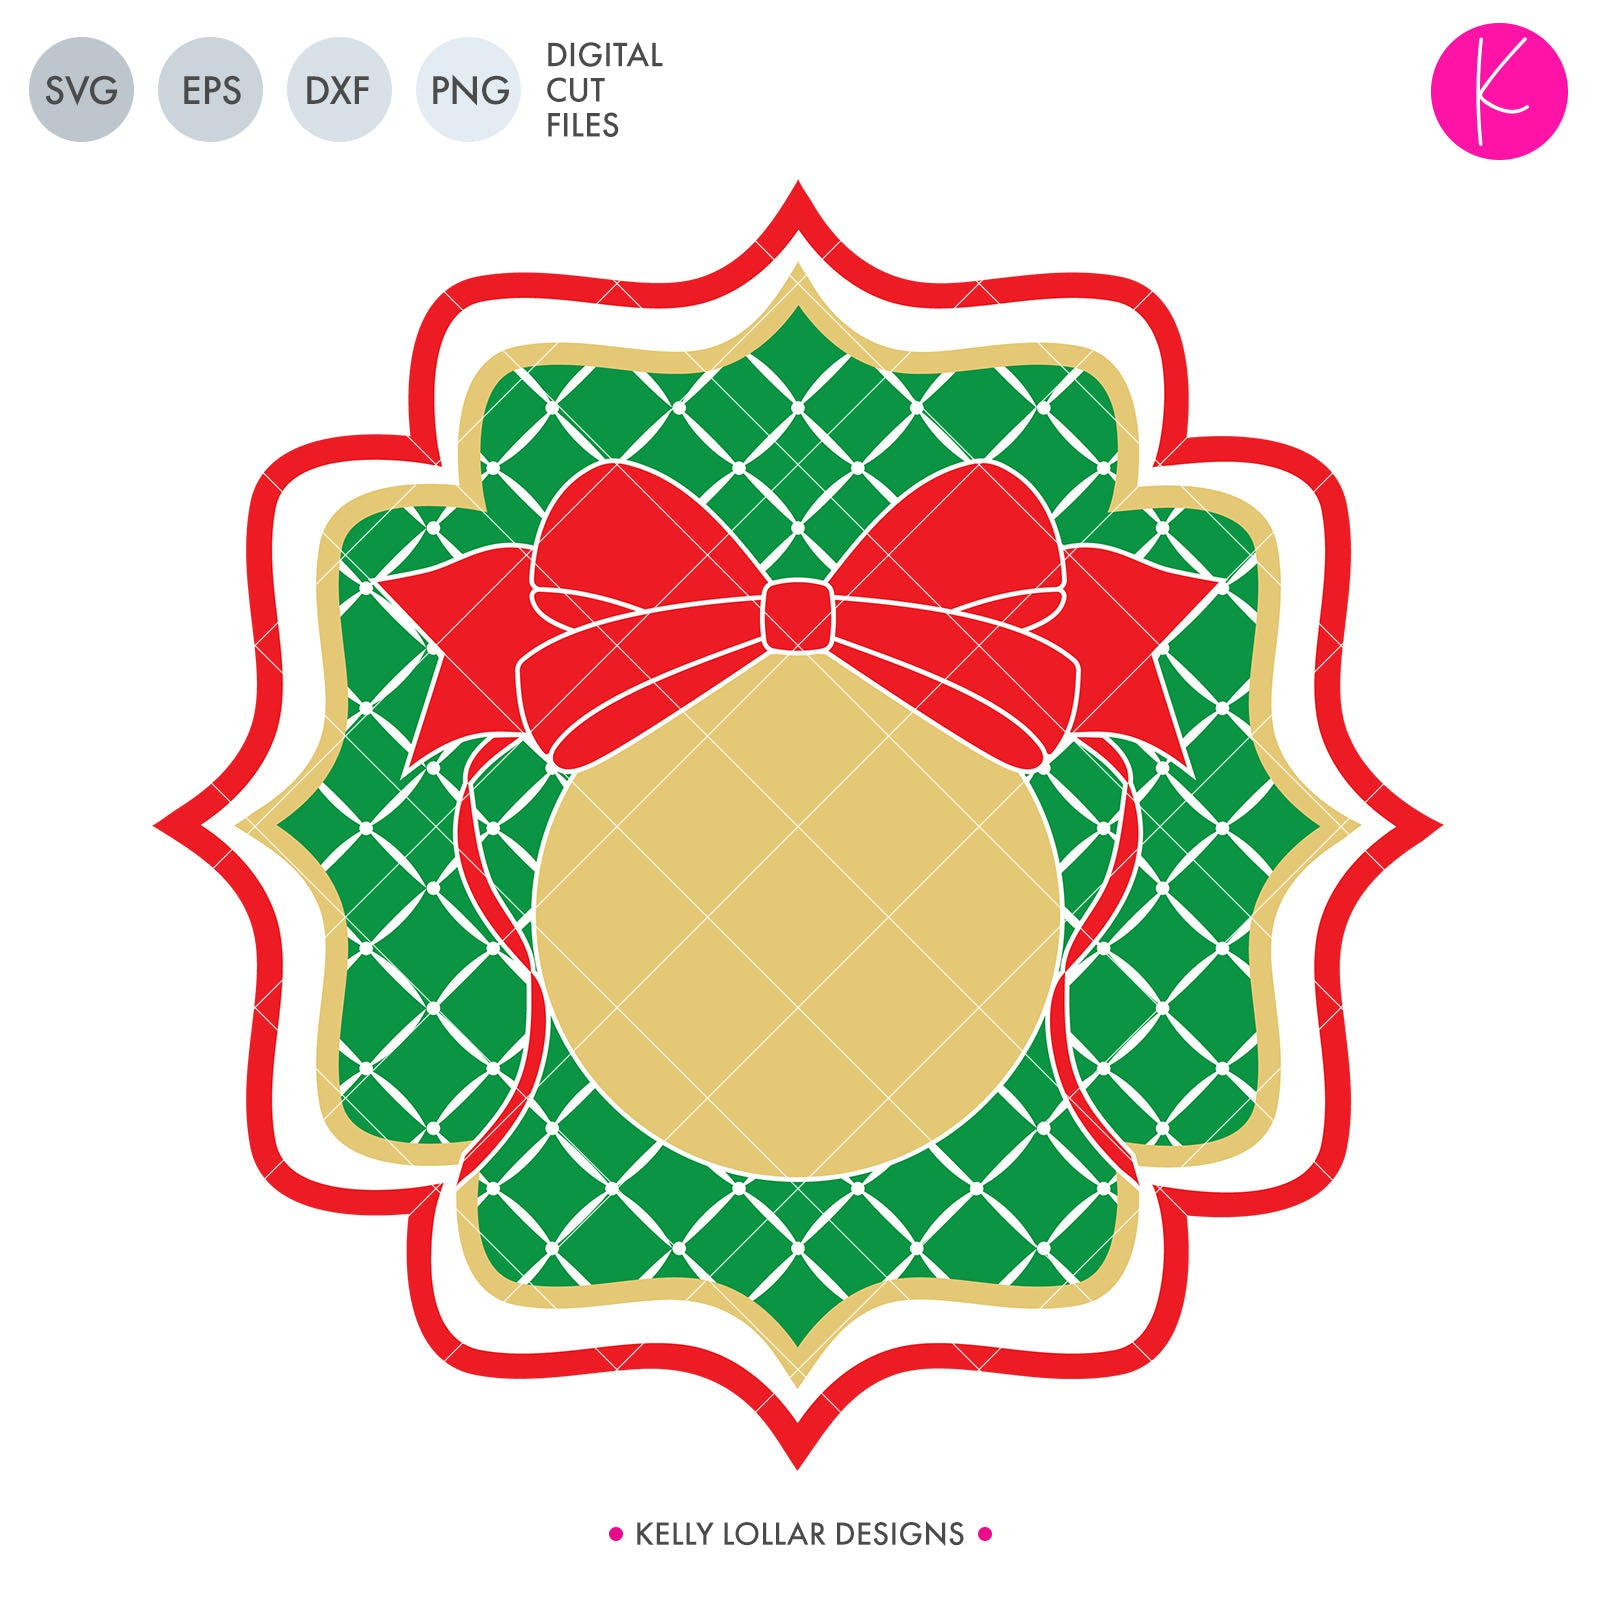 Christmas Ornament Monogram | SVG DXF EPS PNG Cut Files Traditional Style Monogram Frame with Tufted Background and Bow Topped Ornament for Circle Monograms for Christmas Shirts and Home Decor | SVG DXF PNG Cut Files 1 file for each